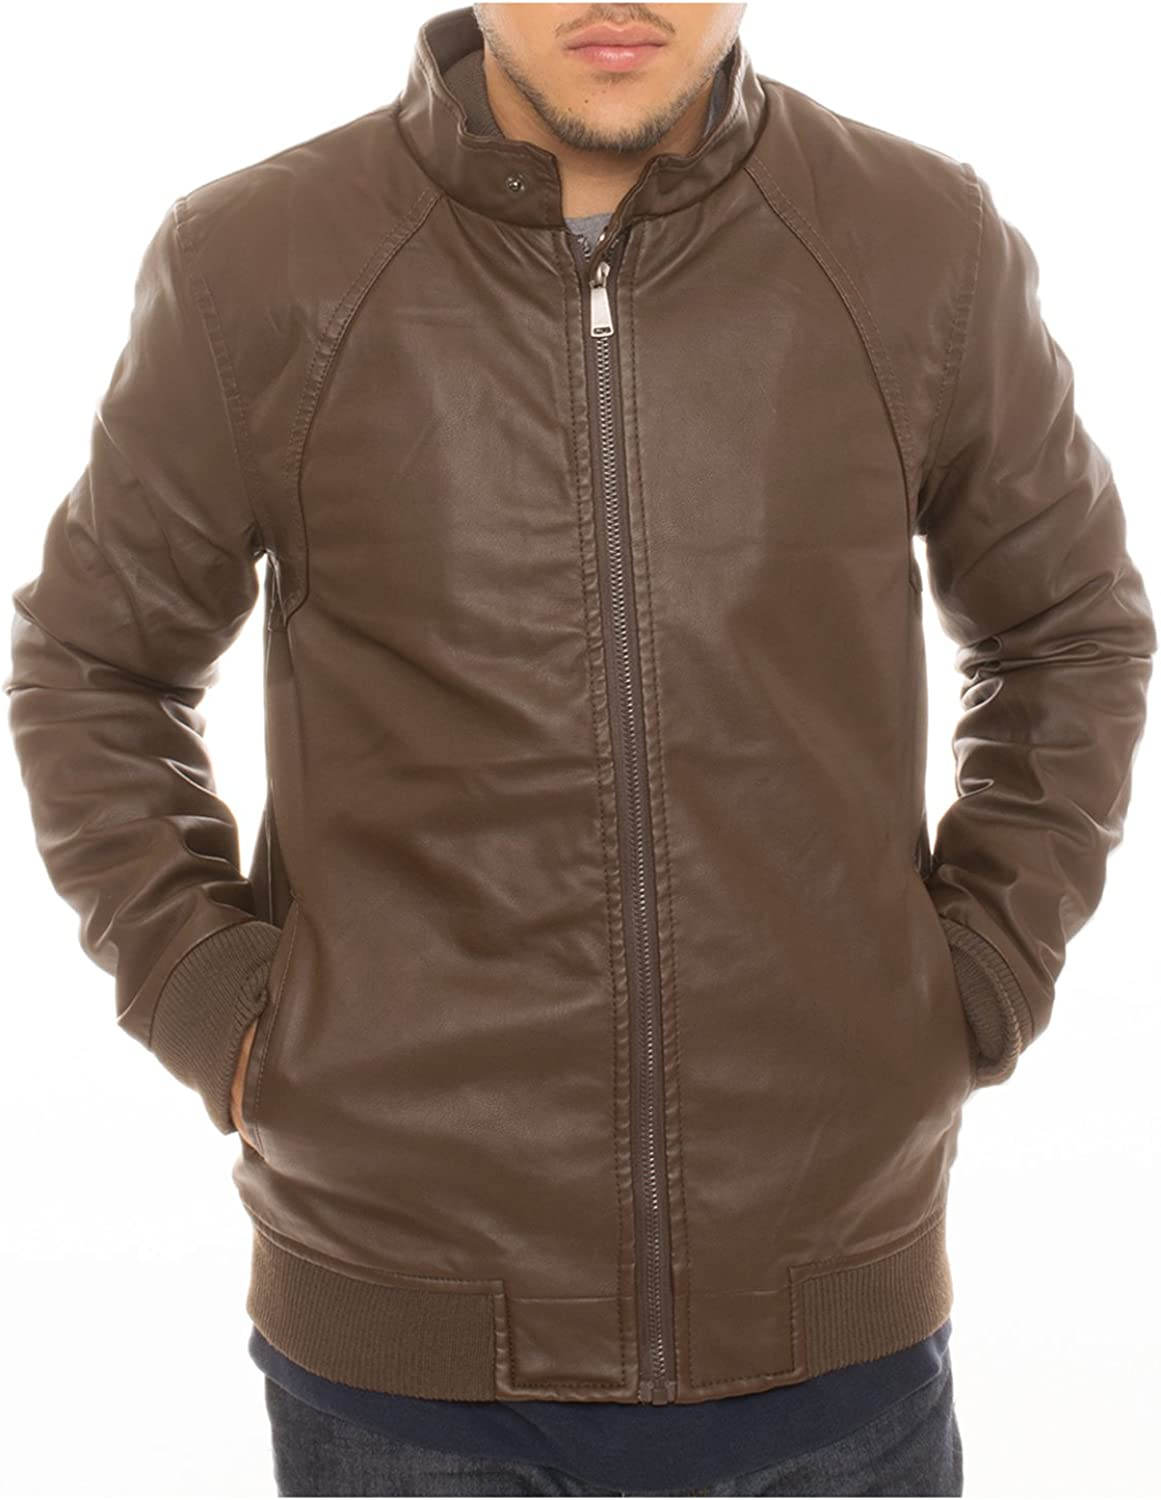 I5 Apparel Mens Motorcycle Bomber Faux Leather Jacket Fleece Lined with Ribb Bottom